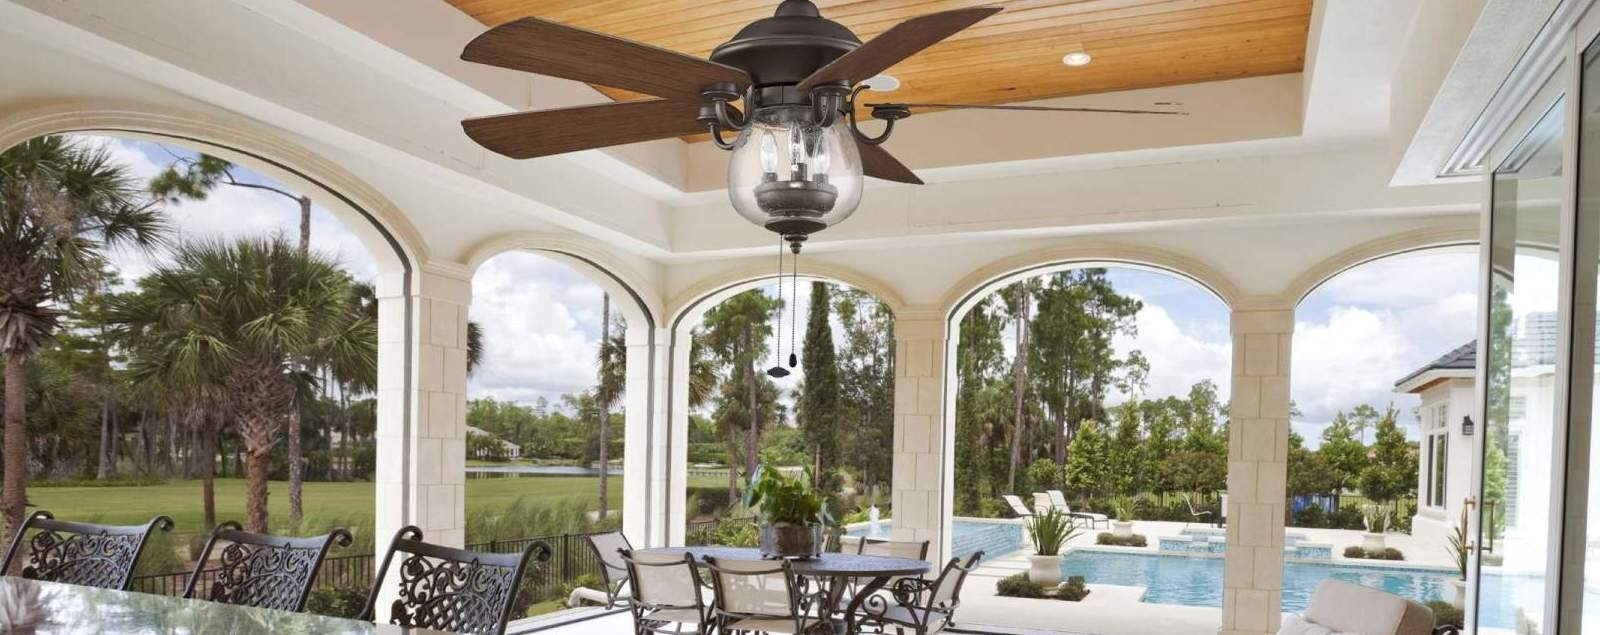 High Volume Outdoor Ceiling Fans Regarding Most Popular Outdoor Ceiling Fans – Shop Wet, Dry, And Damp Rated Outdoor Fans (View 15 of 20)